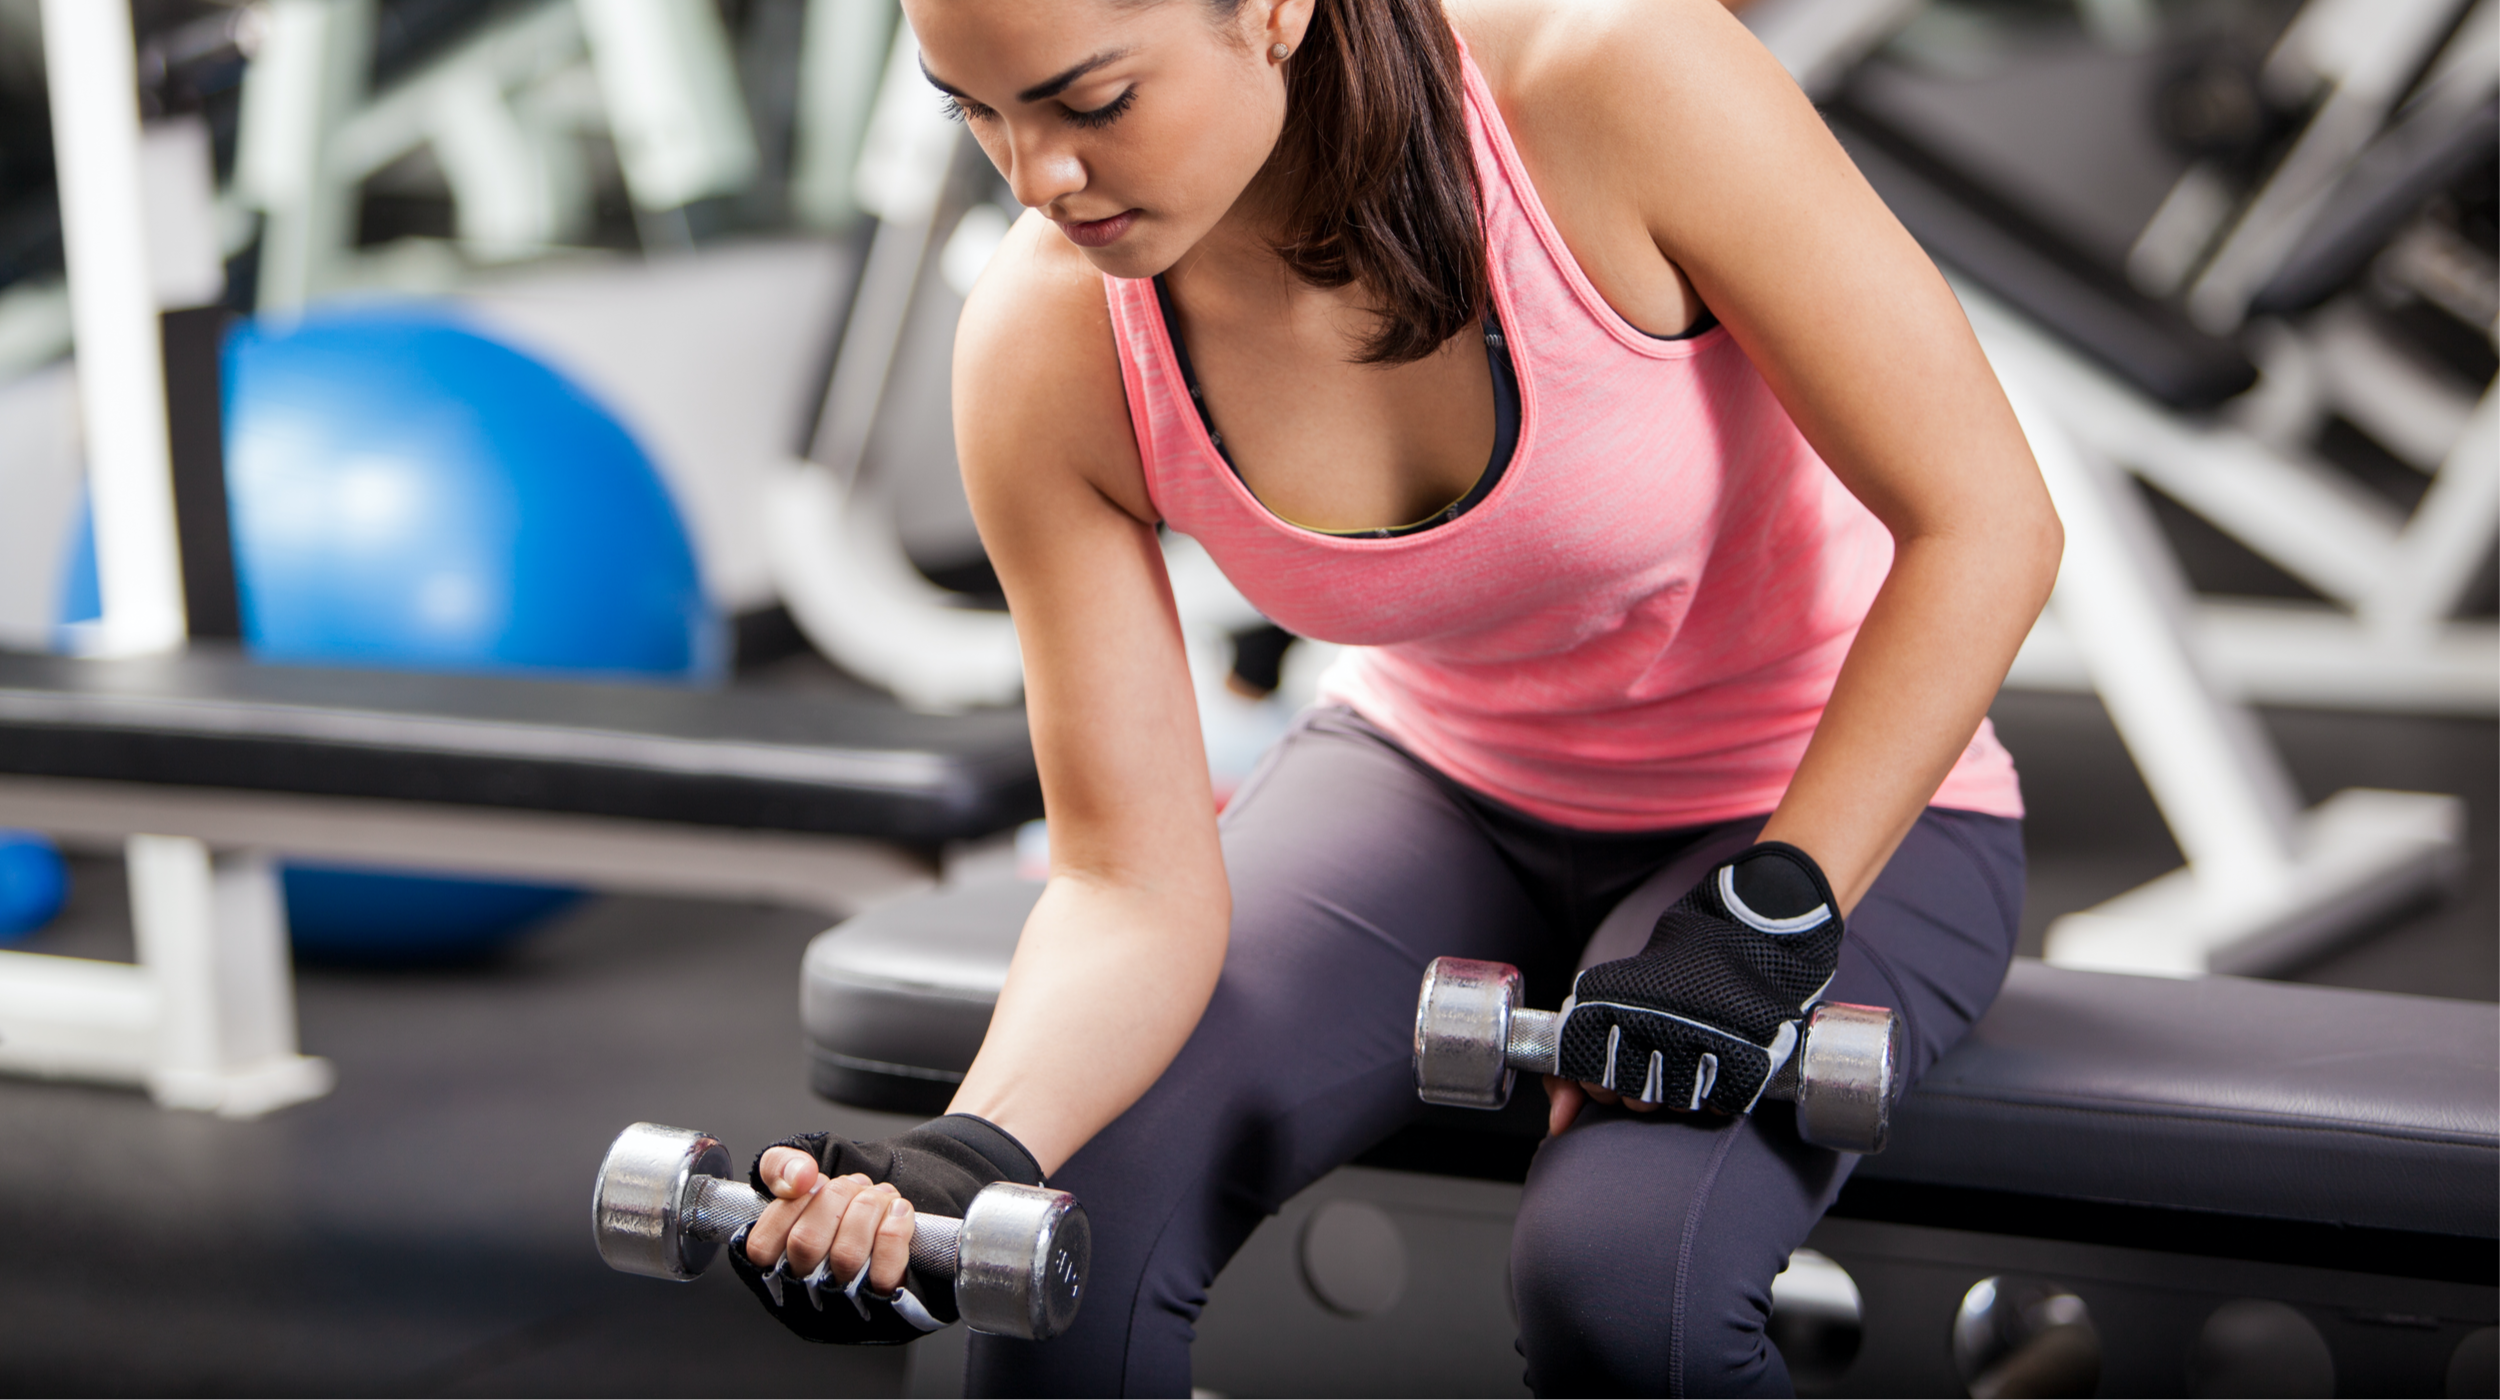 Prioritizing Lifting Weights Over Cardio